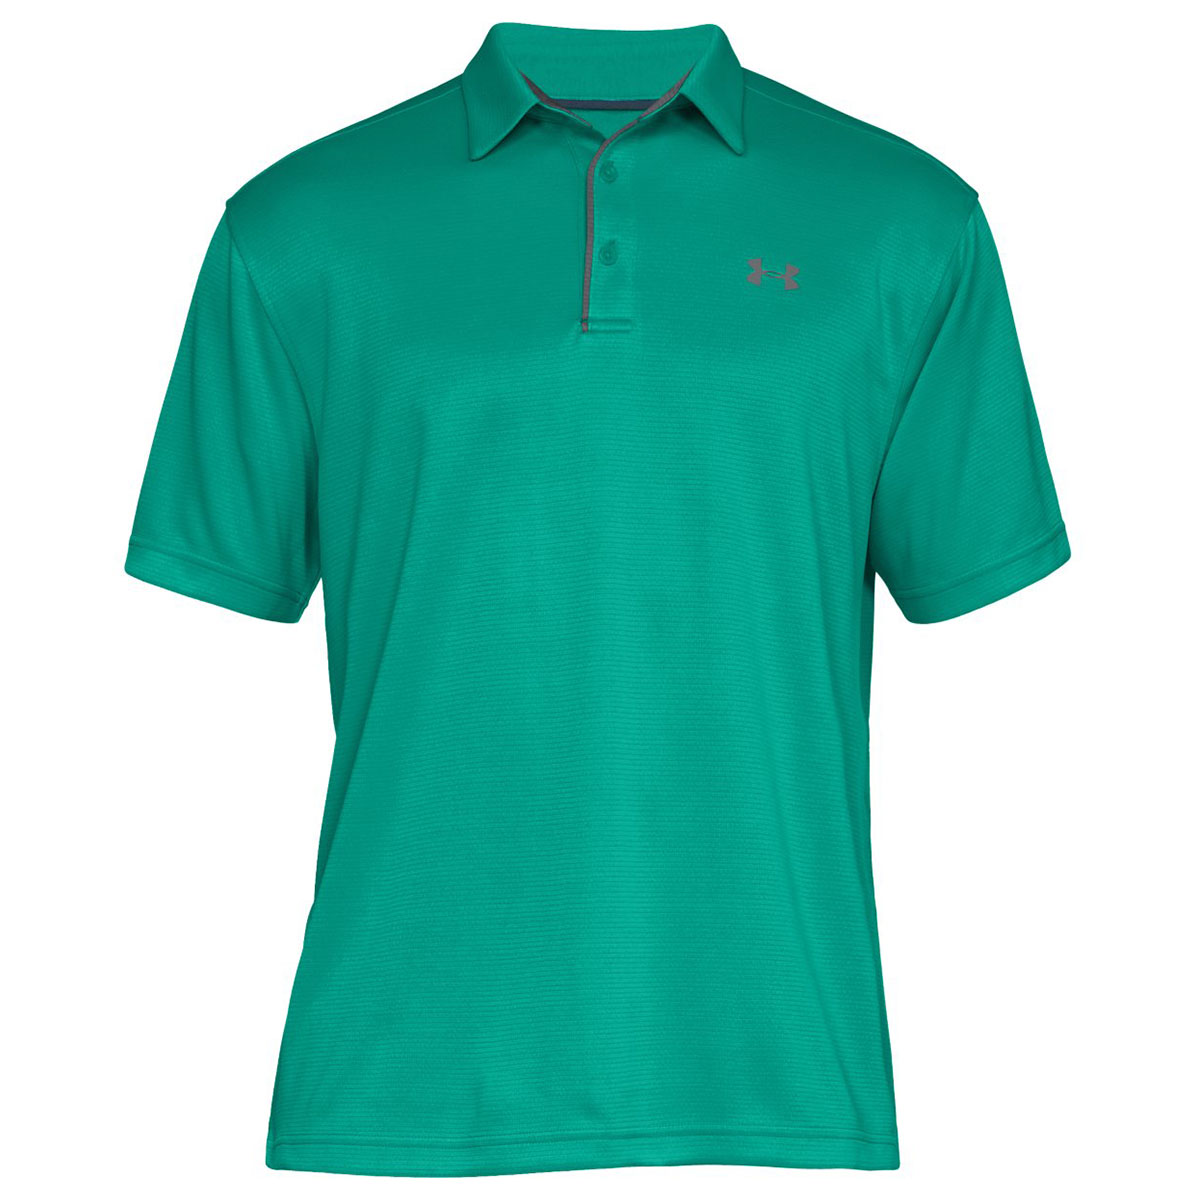 Under-Armour-Mens-2019-Golf-Tech-Wicking-Textured-Soft-Light-Polo-Shirt thumbnail 36